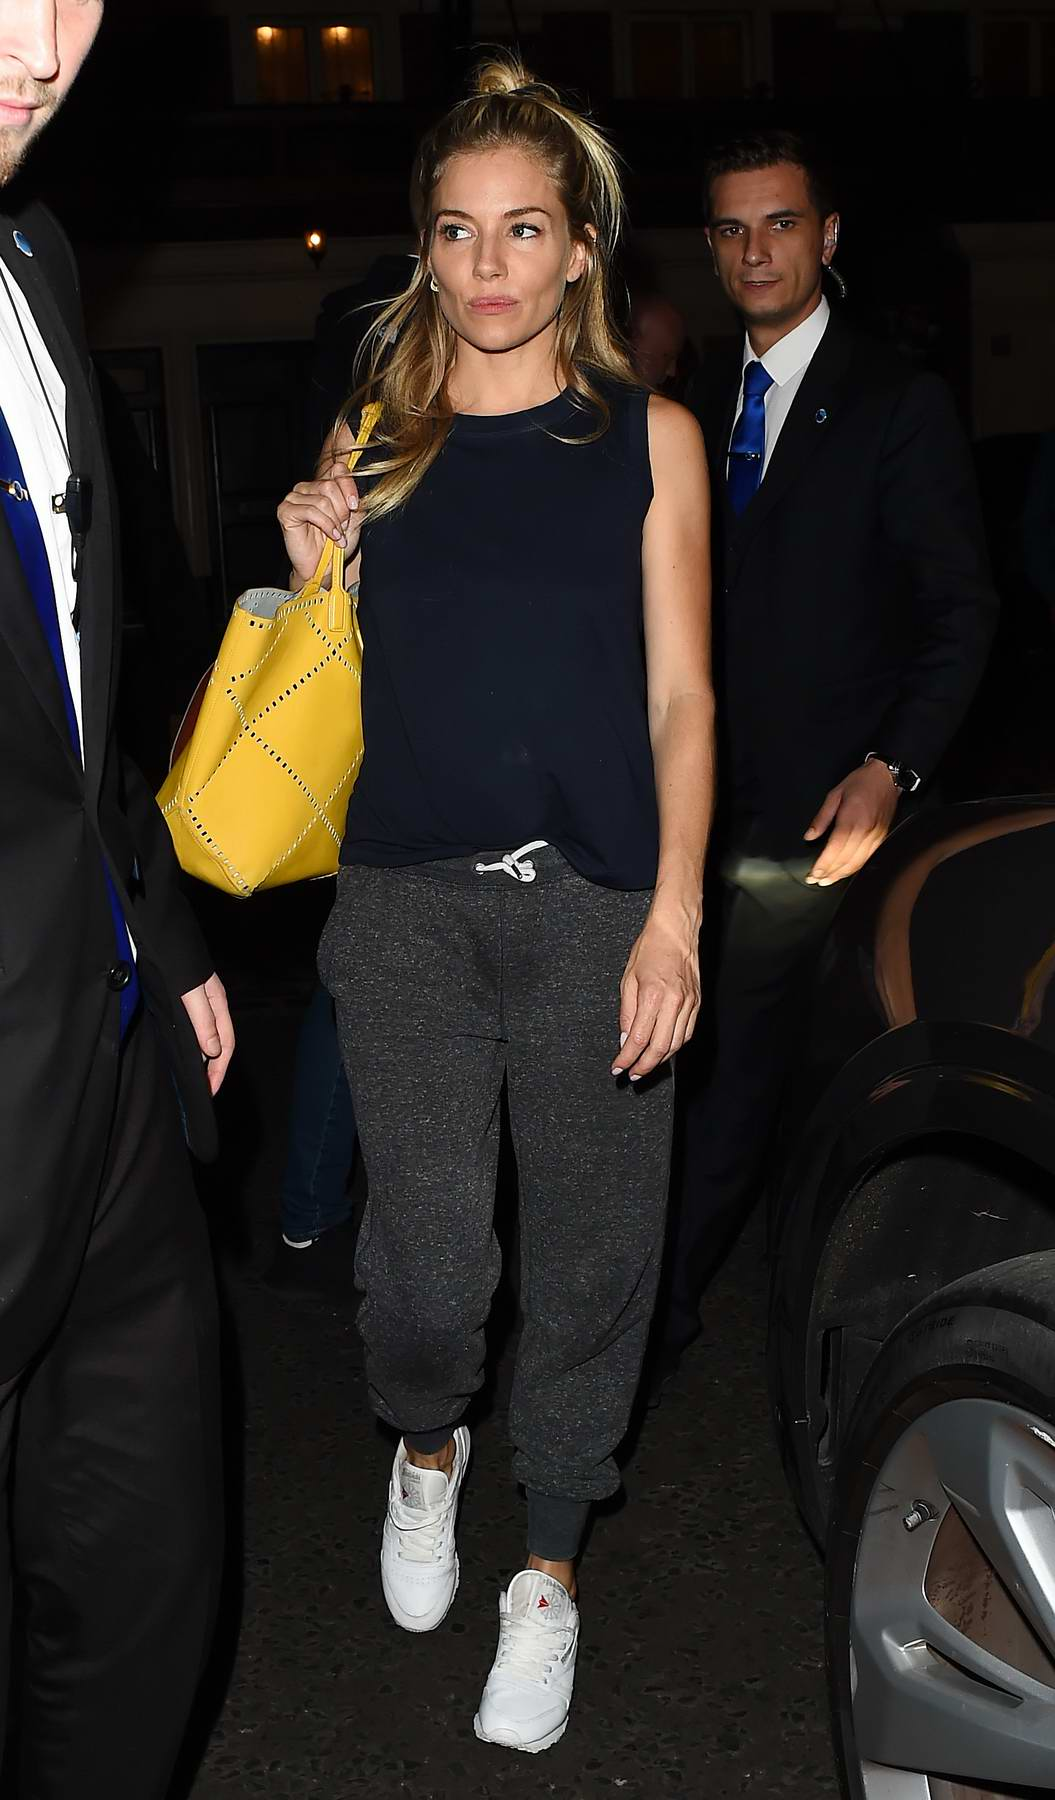 Sienna Miller leaving after her performance at Apollo Theatre in London